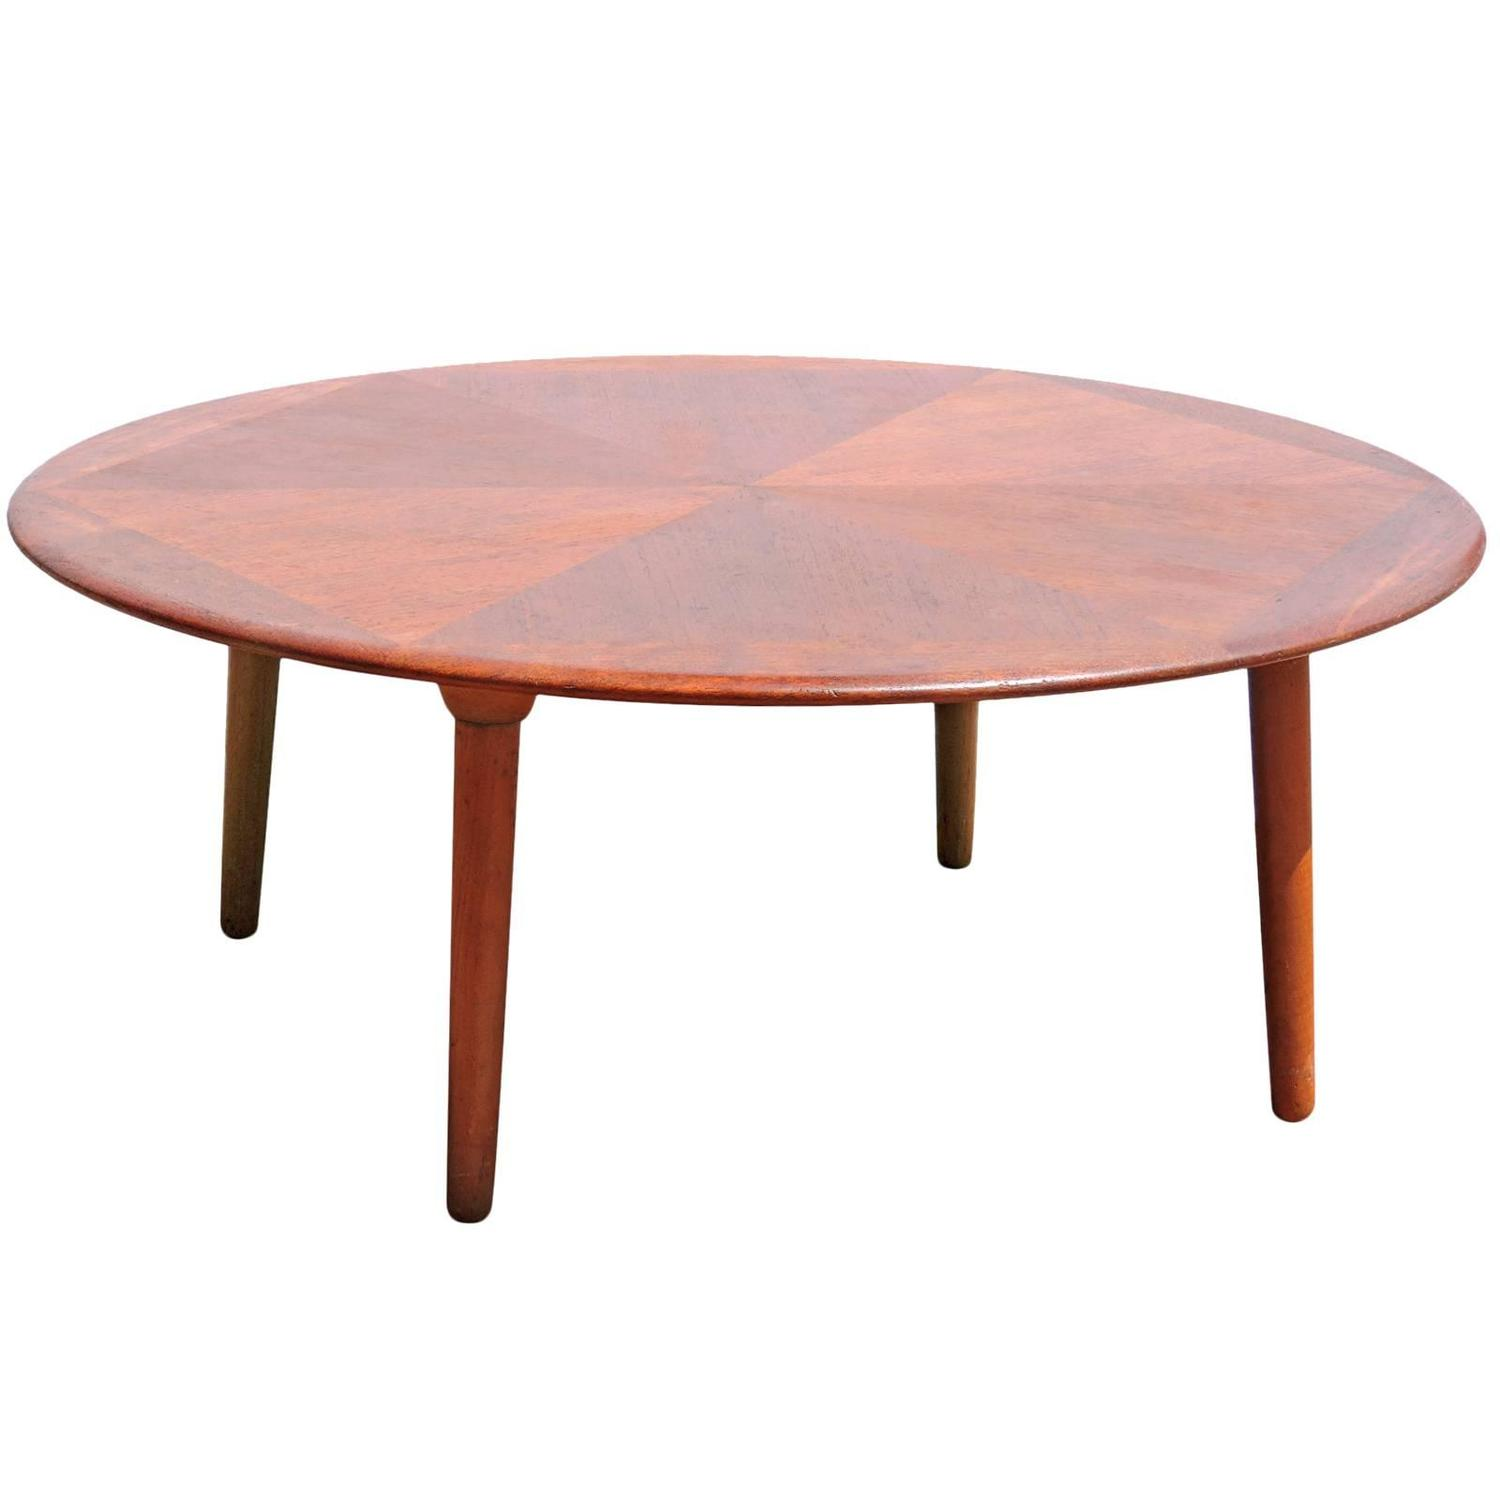 Teak Burger Coffee Table: Teak Diamond Design Round Coffee Table By H. W. Klein For